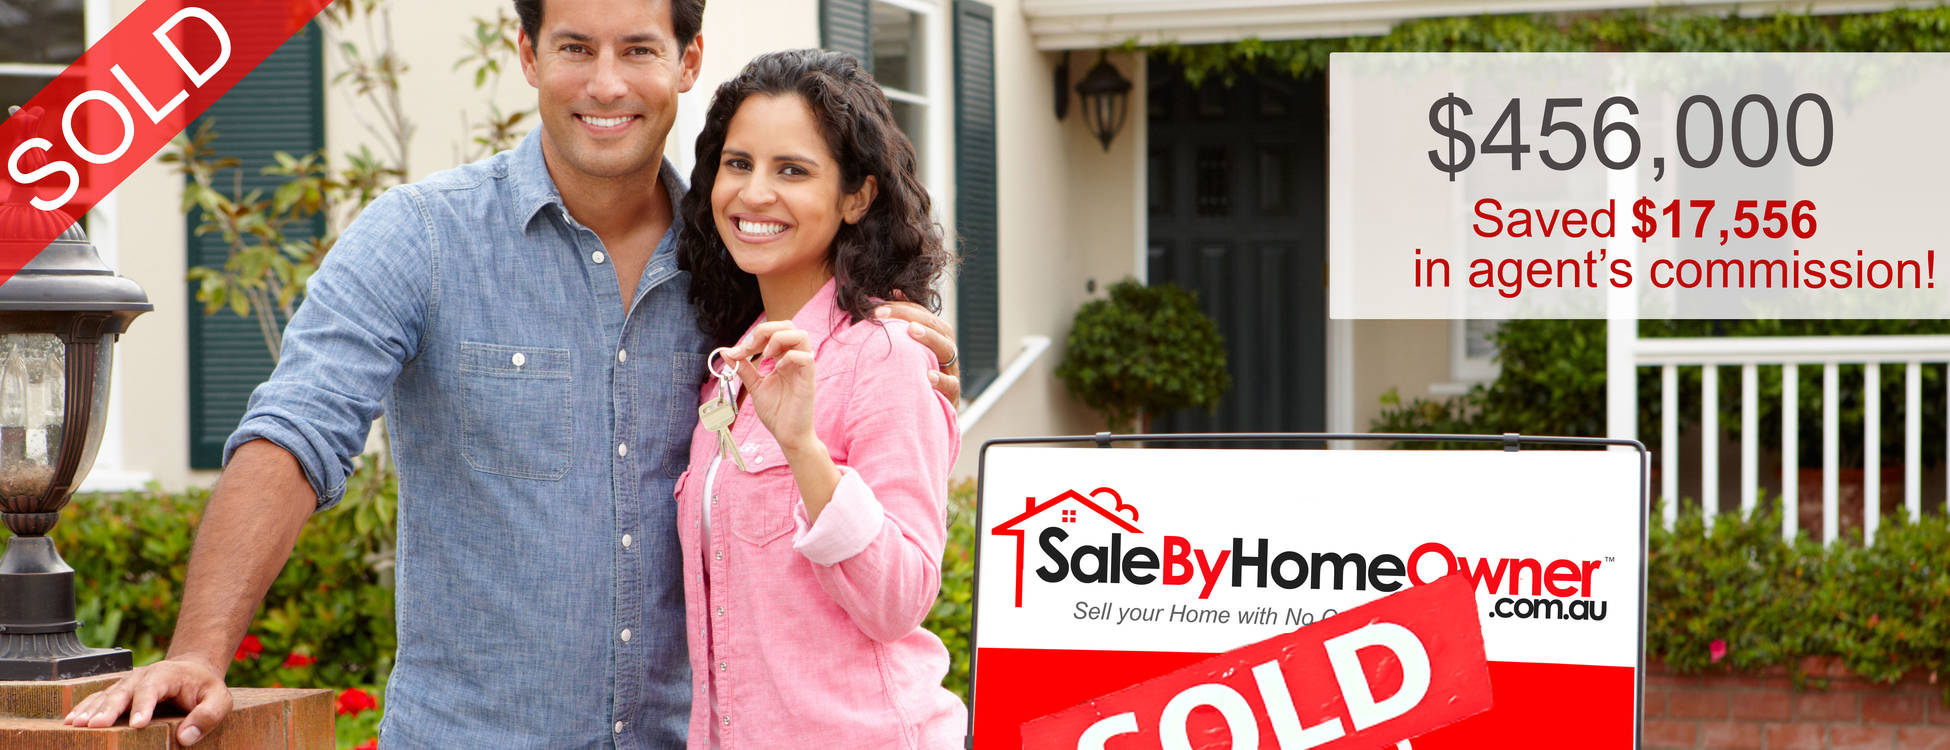 How do I sell my own house?